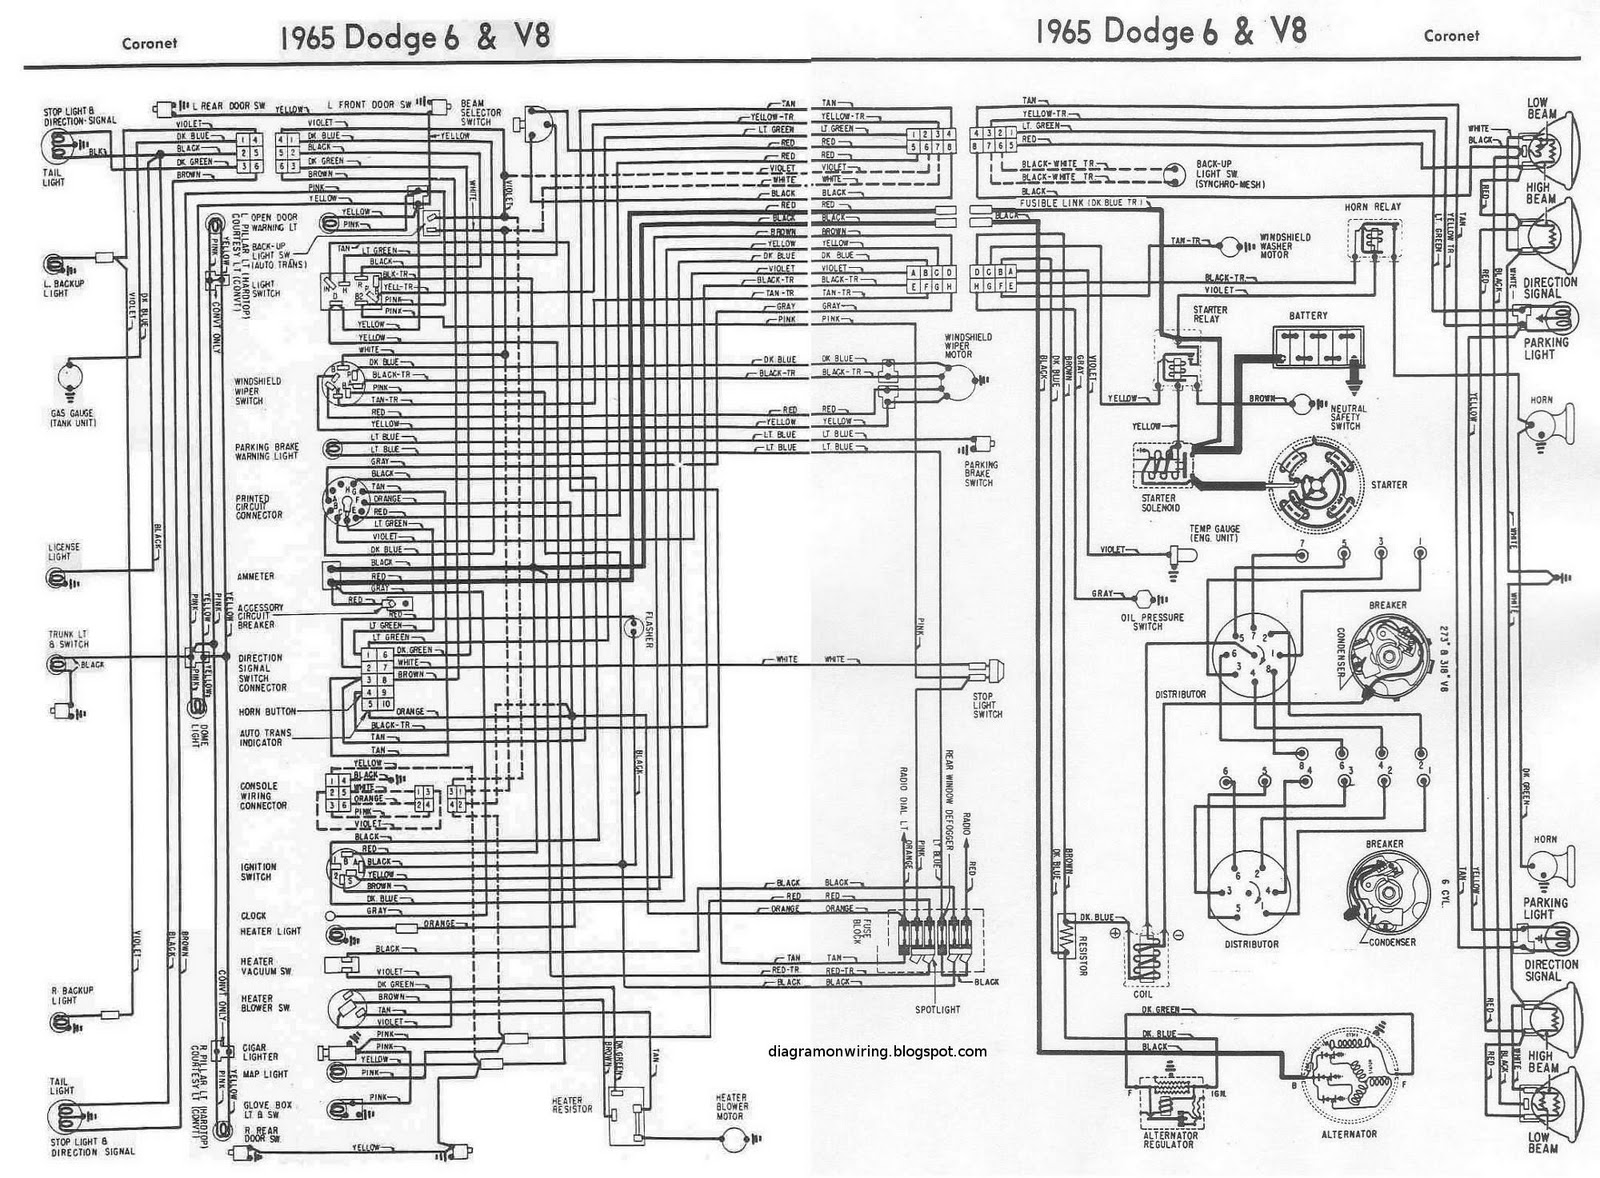 Dodge 6 and V8 Coronet 1965 Complete Wiring Diagram All